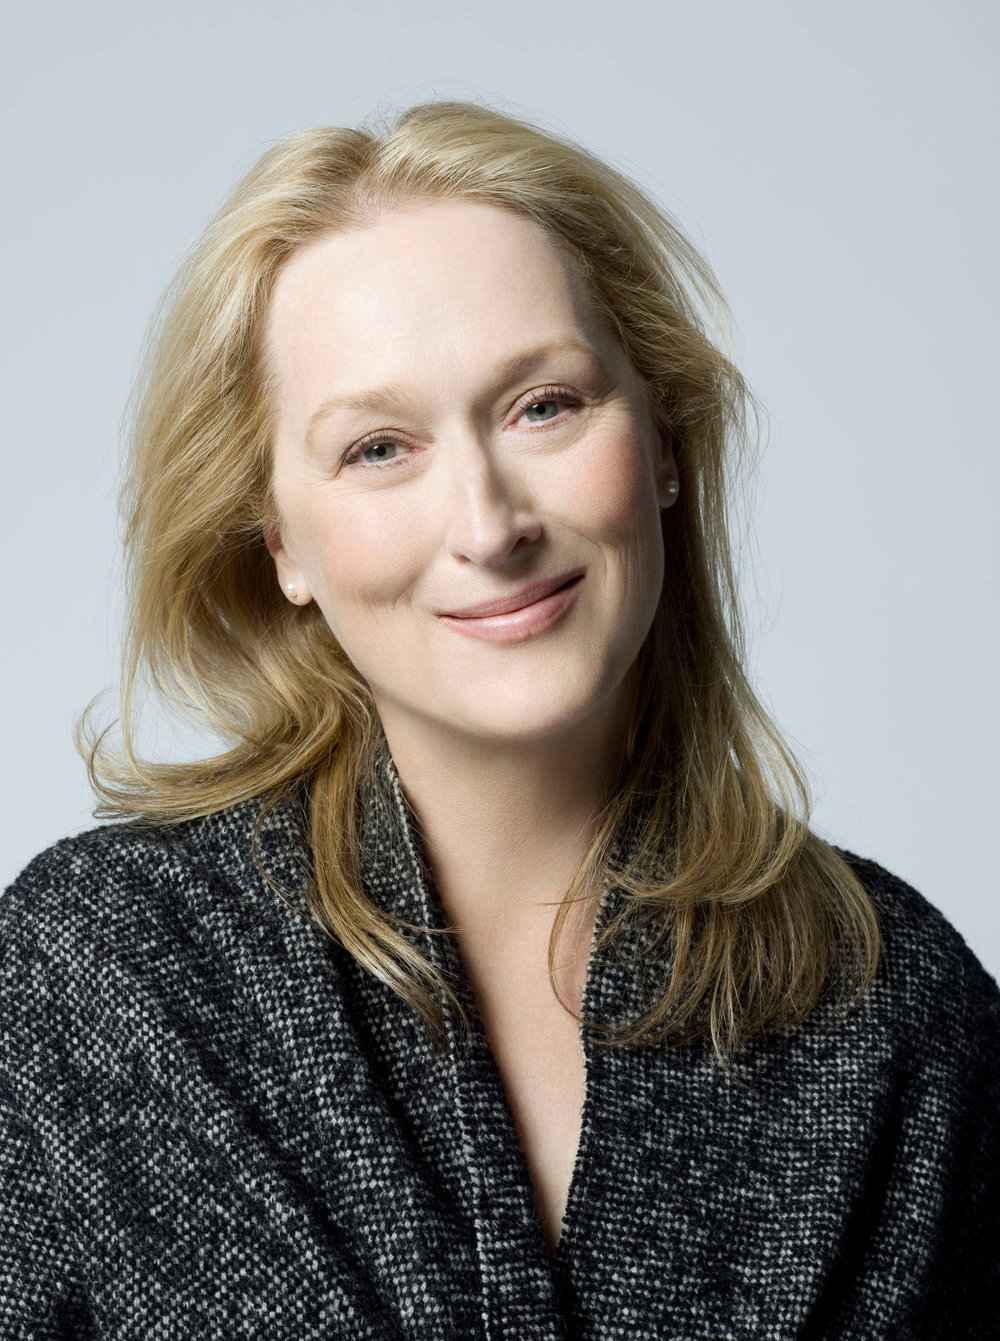 Meryl Streep - Known as the best actress of her generation, the record holder for the greatest number of Academy Award and Golden Globe nominations.